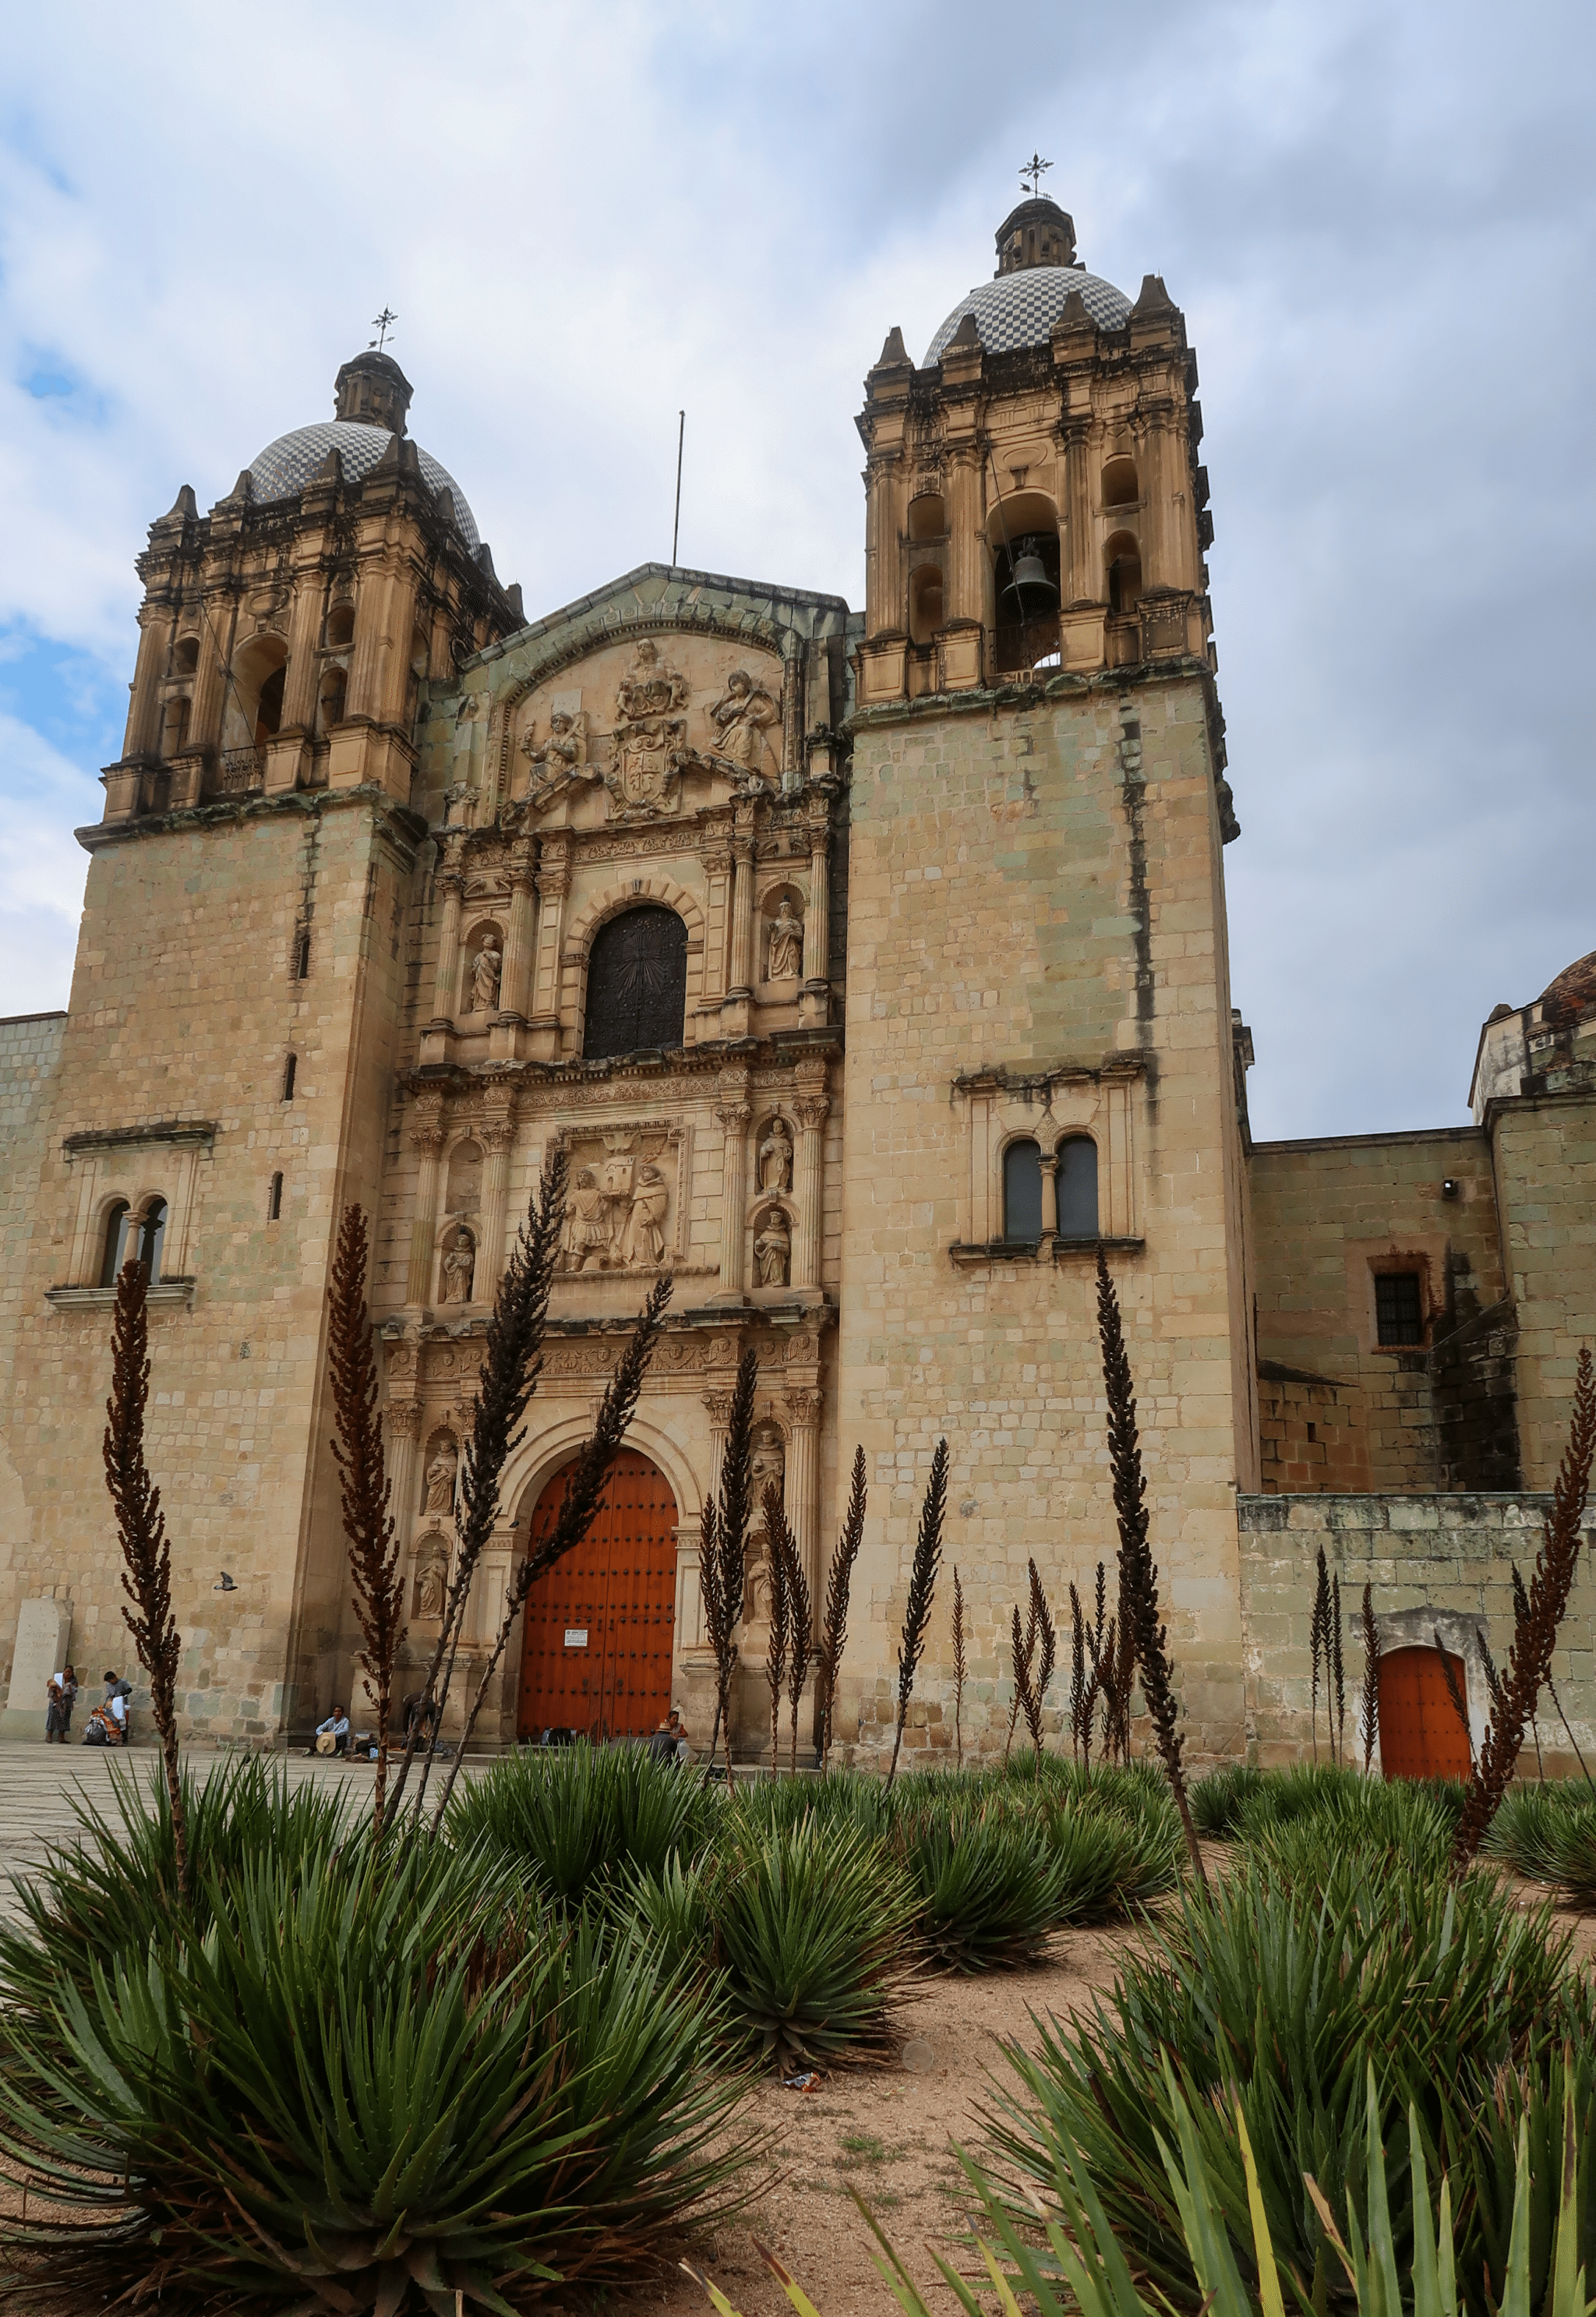 Visiting the Templo de Santo Domingo is one of the top things to do in Oaxaca.